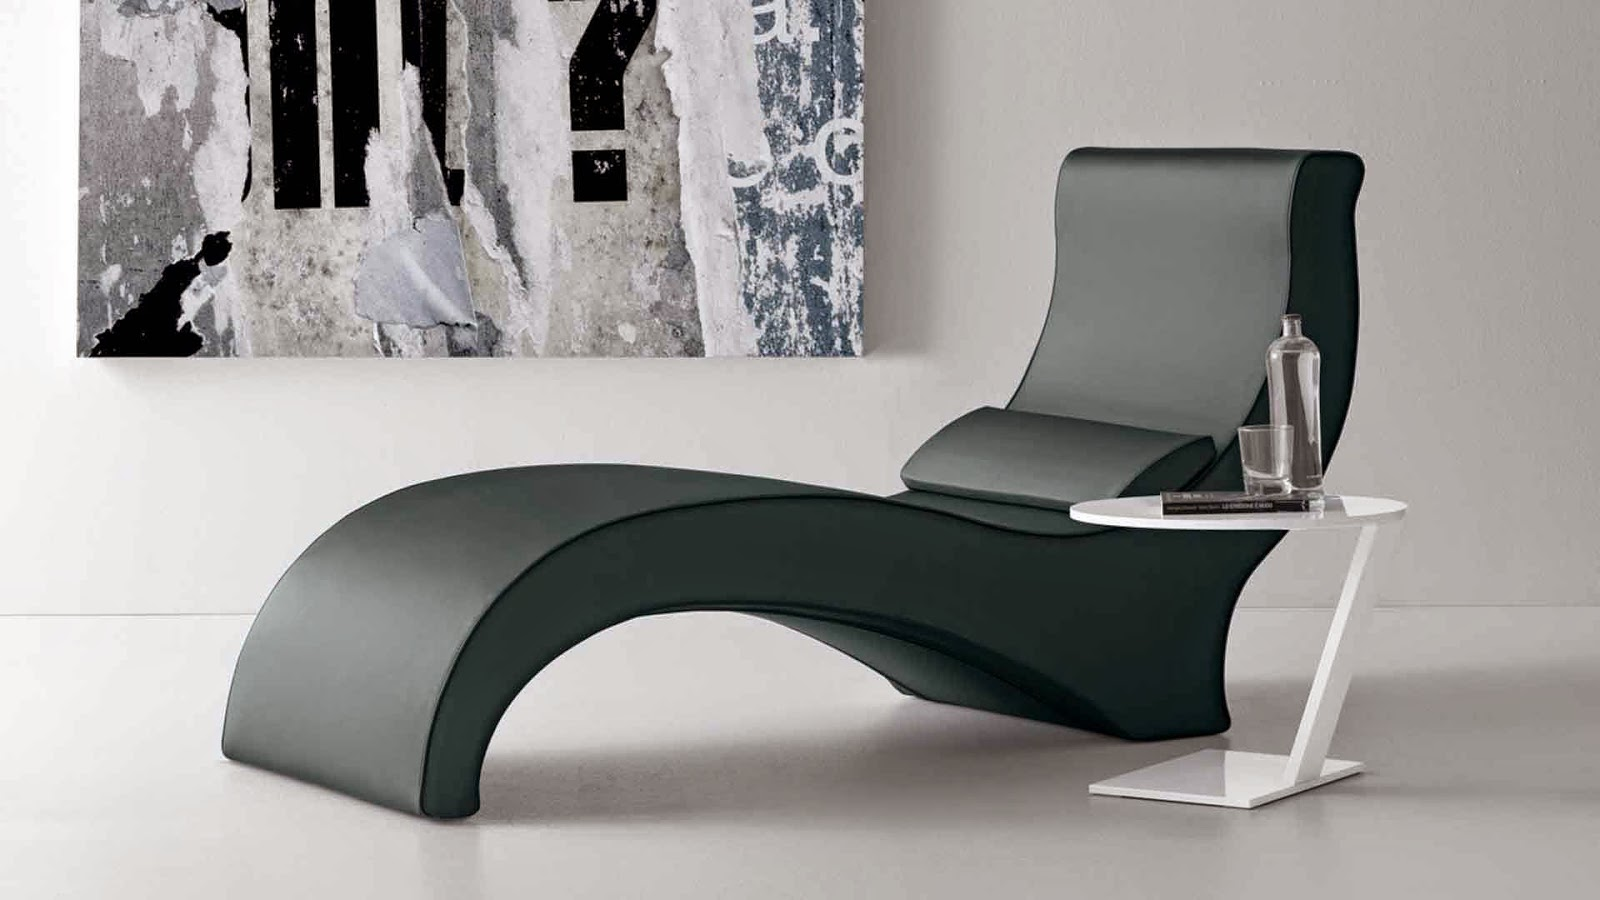 chaise longue d interieur design 28 images chaise. Black Bedroom Furniture Sets. Home Design Ideas